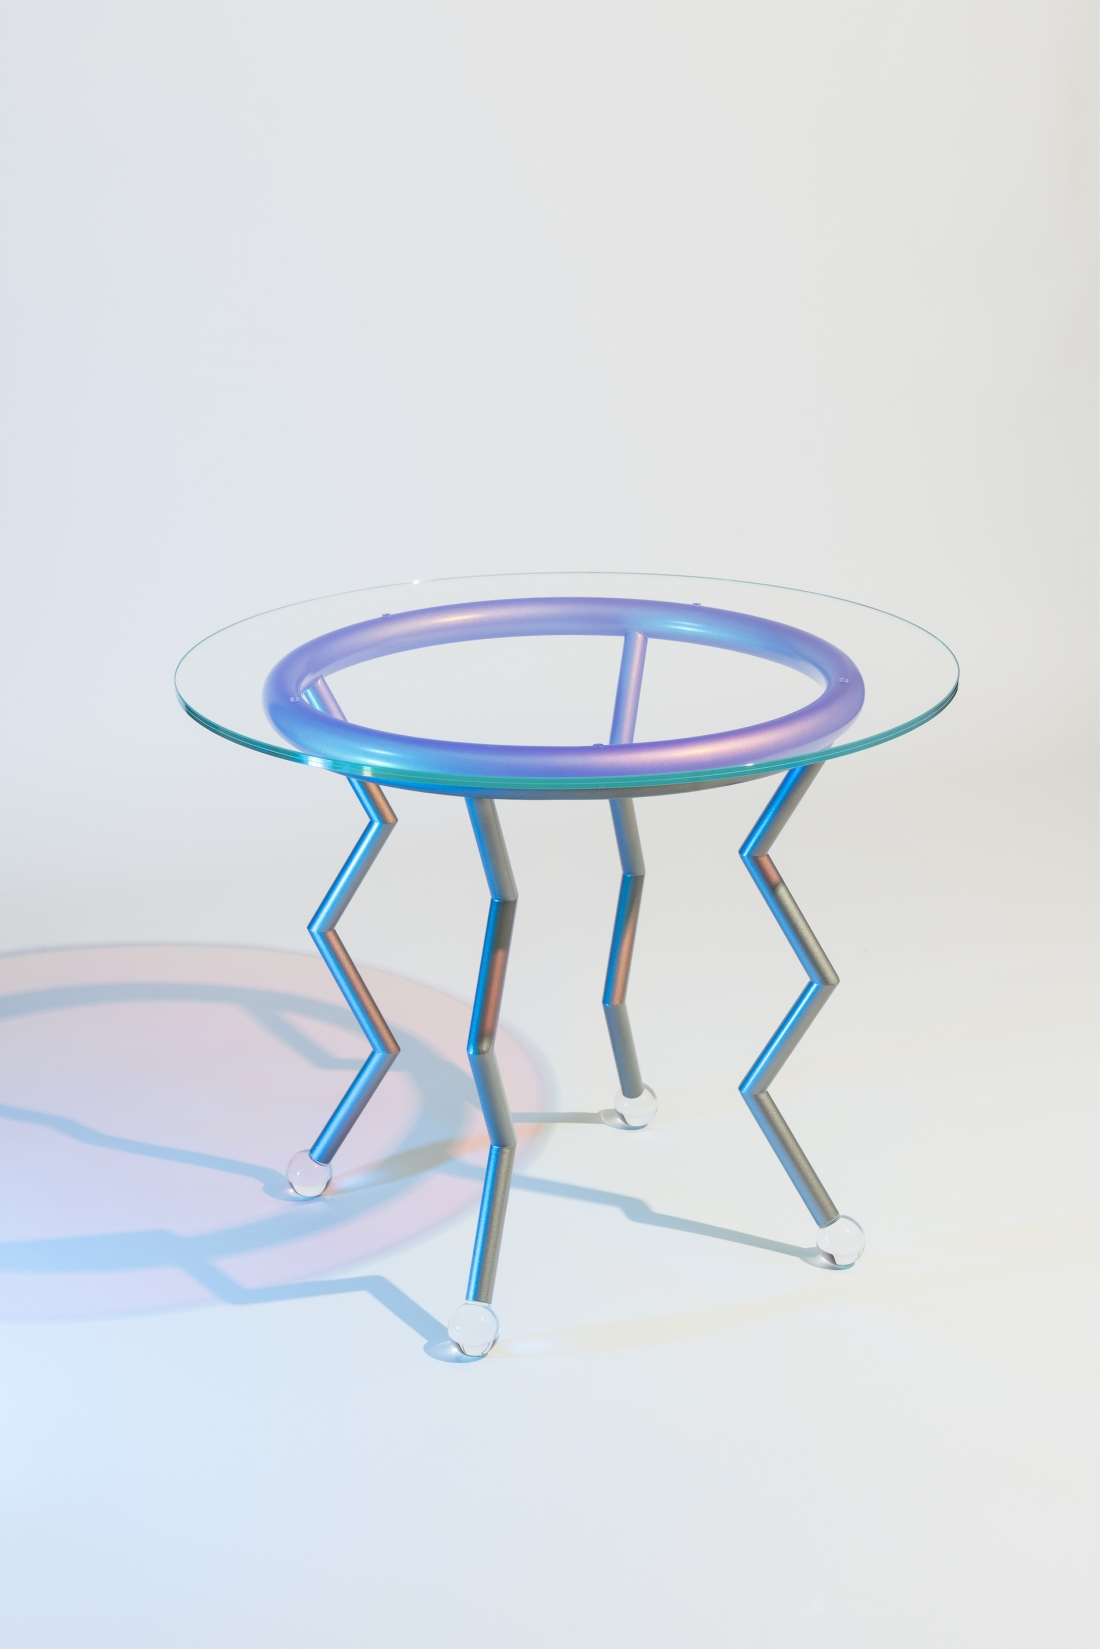 "Medusa, Masanori Umeda, 2020 (based on a 1982 design), limited edition of 24 items + 1 artist's proof, ""Night Tales"" Collection, Post Design. Table with pale blue metal base, iridescent, dichroic glass top and round plexiglass feet. Dimensions: diameter 90, H 71.5 cm. Photograph © Delfino Sisto Legnani. Courtesy of Memphis srl."